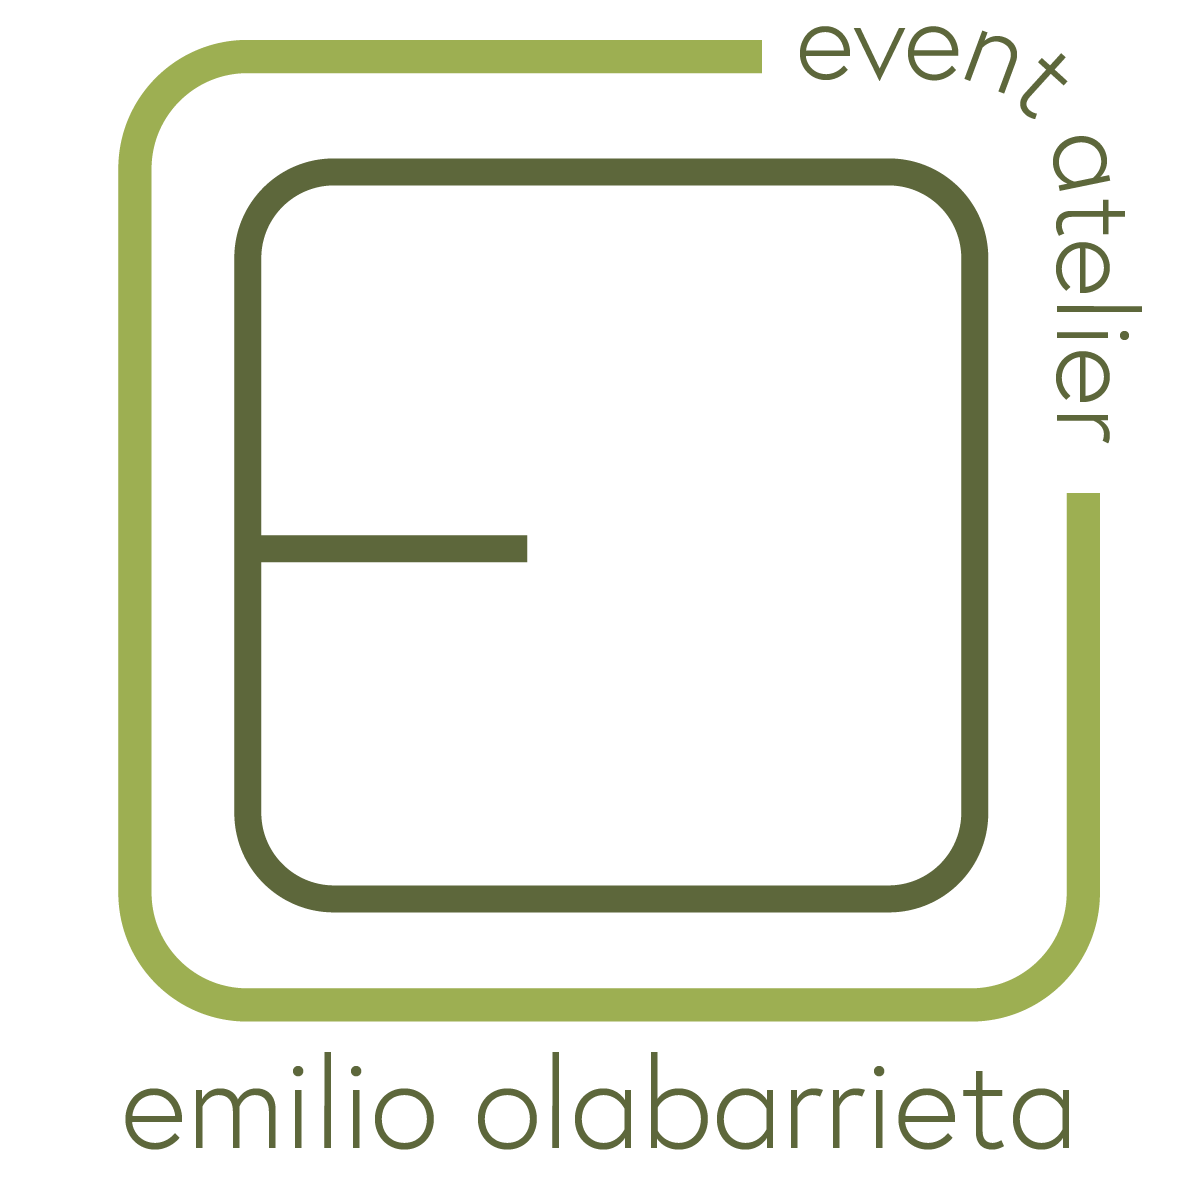 Emilio Olabarrieta | event atelier